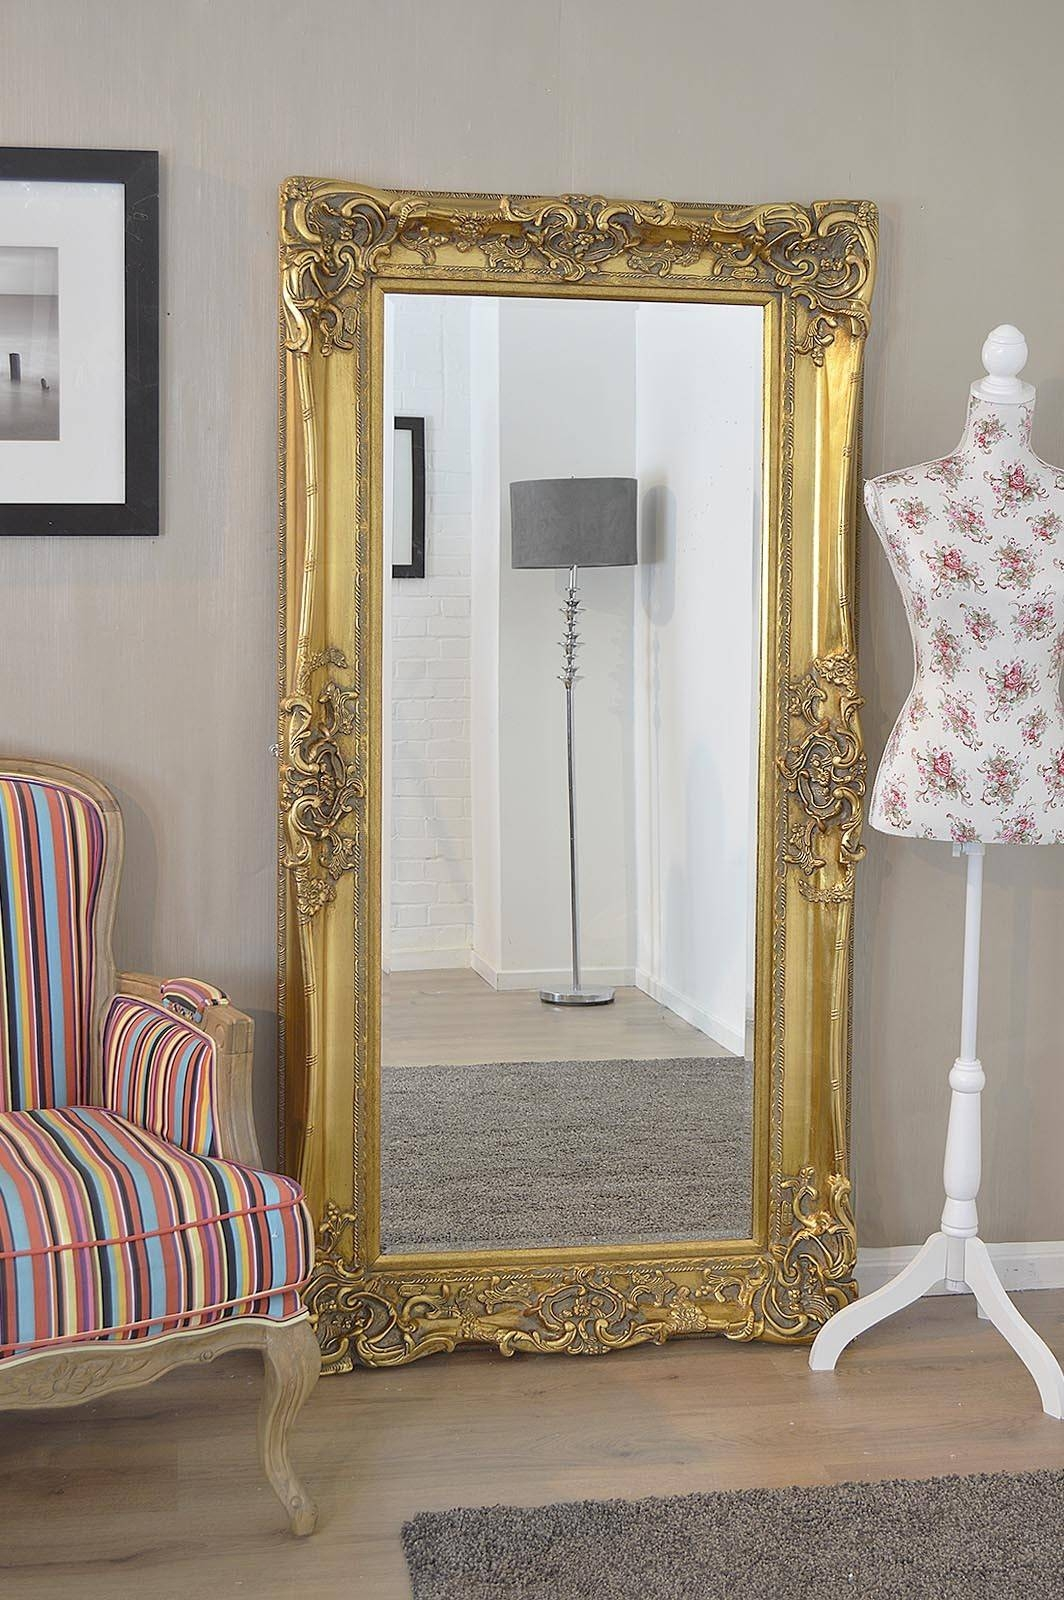 Magnificent Vintage Stand Up Mirror With Frameless Vintage Mirror inside Big Ornate Mirrors (Image 13 of 15)